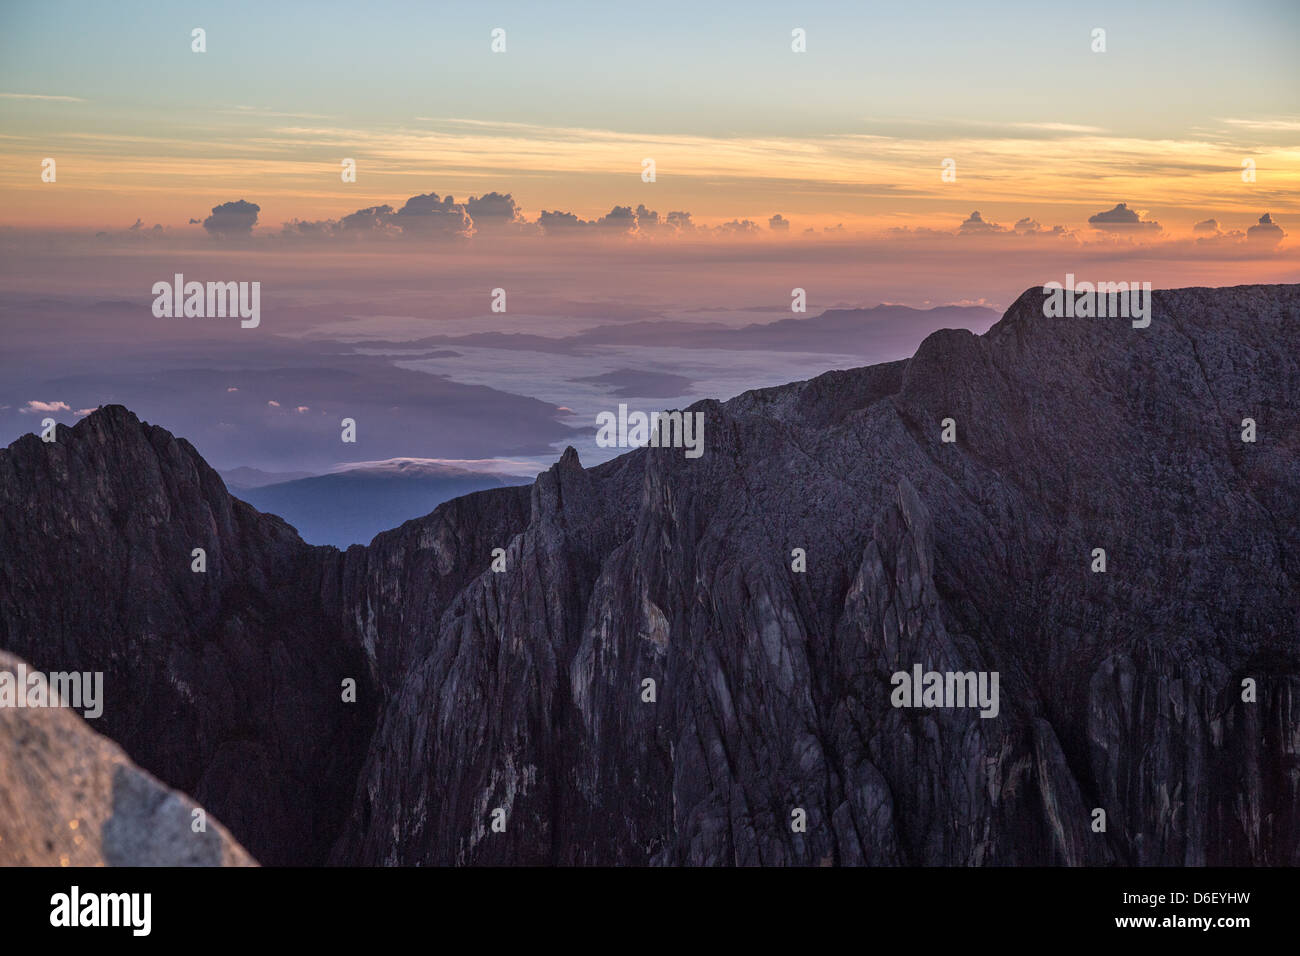 Dawn over Low's Gully a vast shadowy chasm in the flanks of Gunung Kinabalu Sabah Borneo seen from the Low's - Stock Image